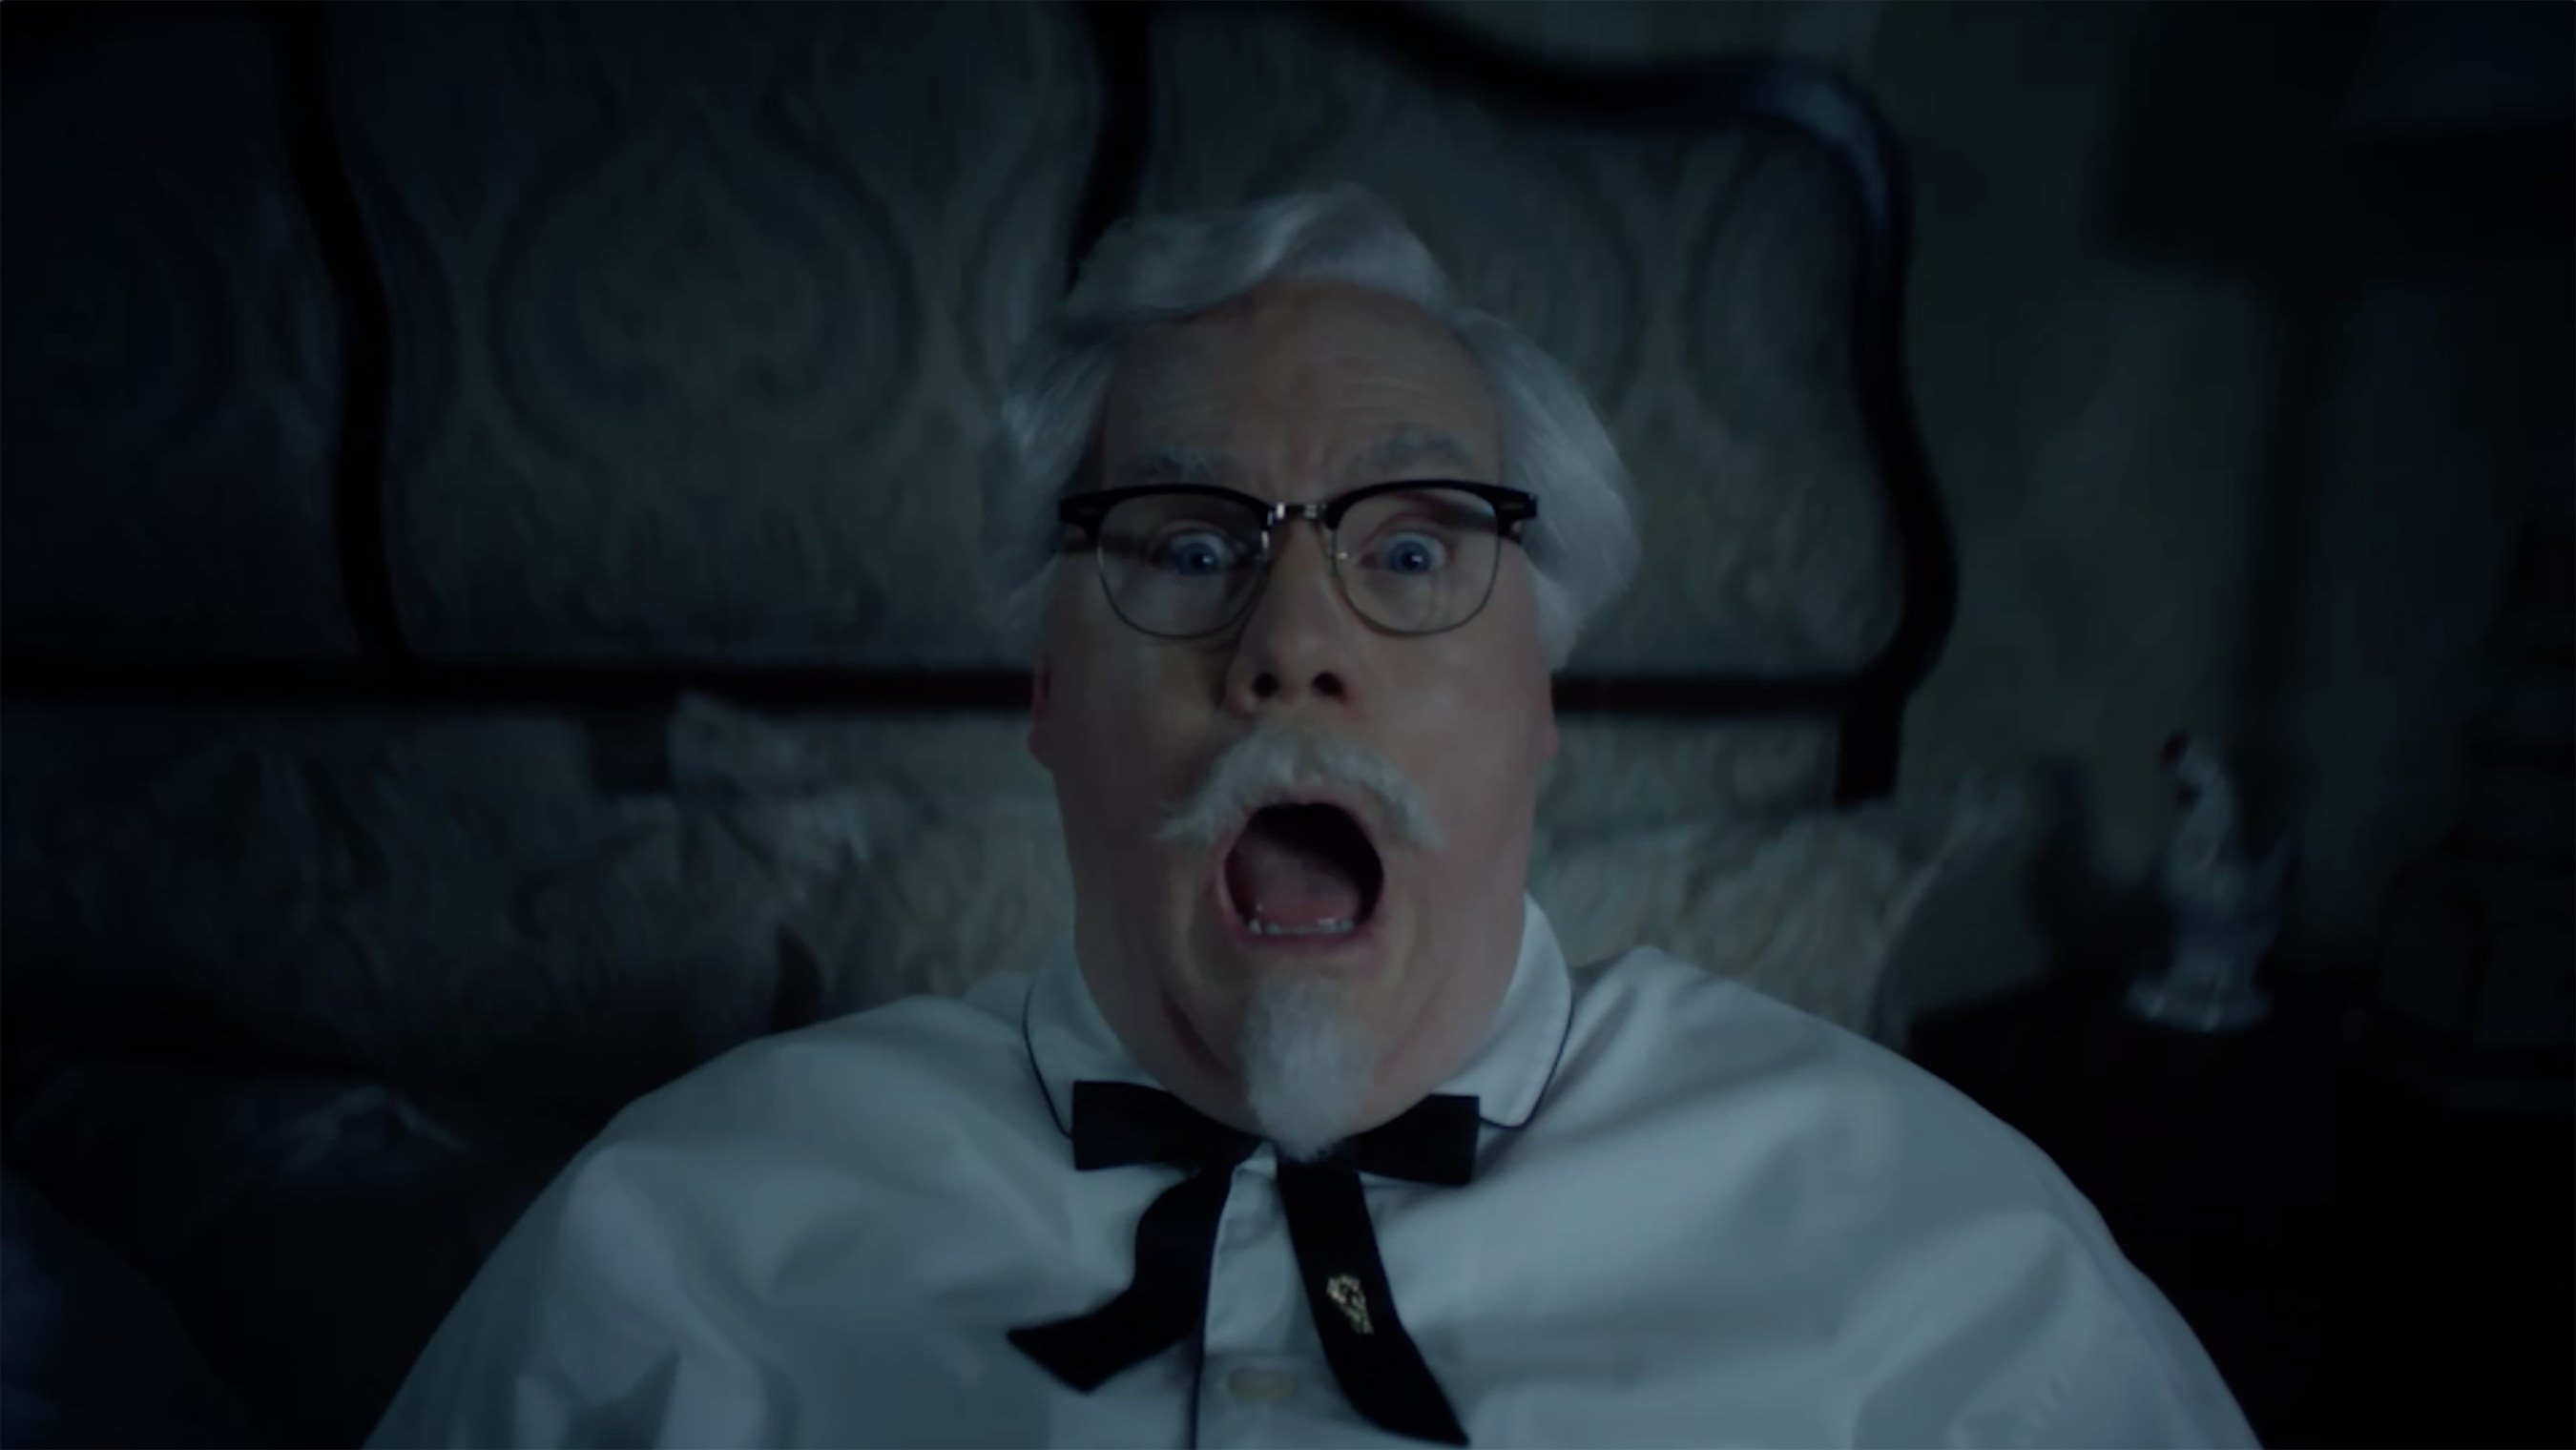 Jim Gaffigan is revealed as the real Colonel Sanders in the newest ad from KFC promoting Nashville Hot Chicken.